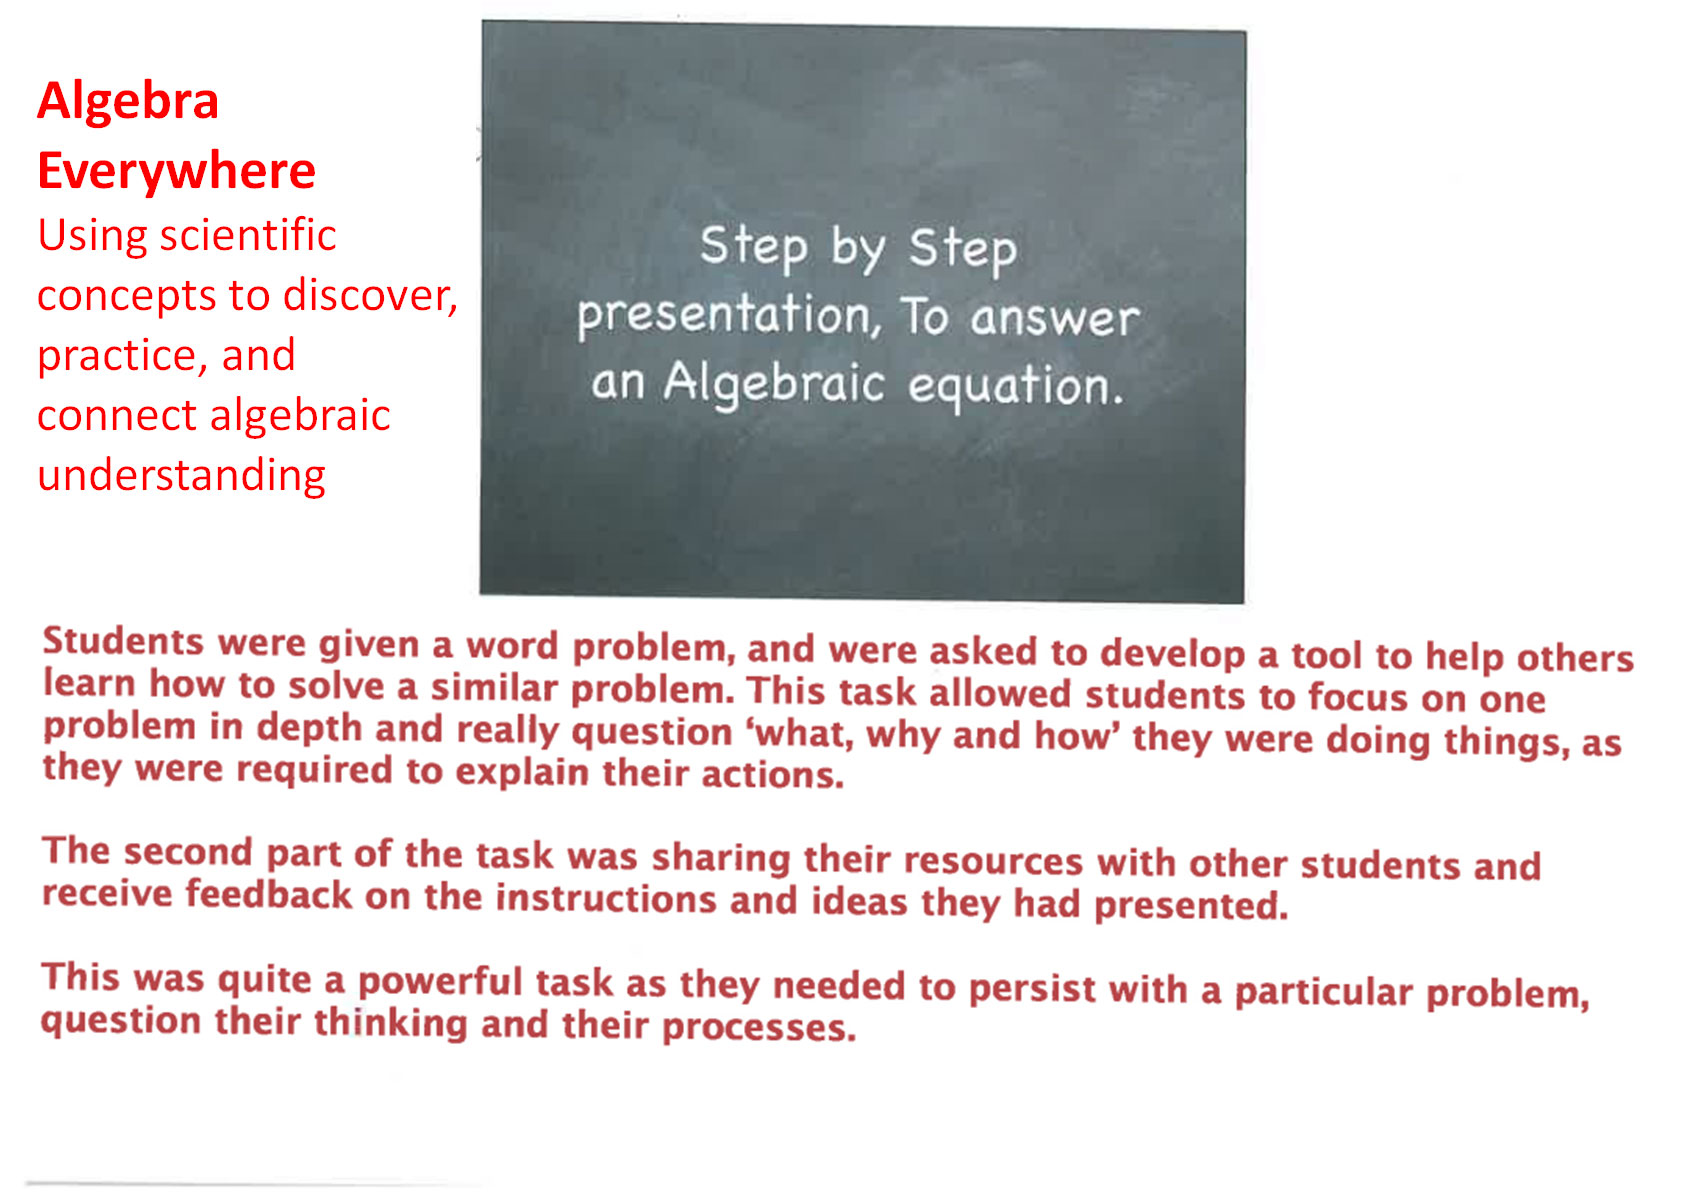 procedure to answer an algebraic equation teaching algebra below are seven images that show how i developed a lesson where my students had to explain how they solved an equation to someone else